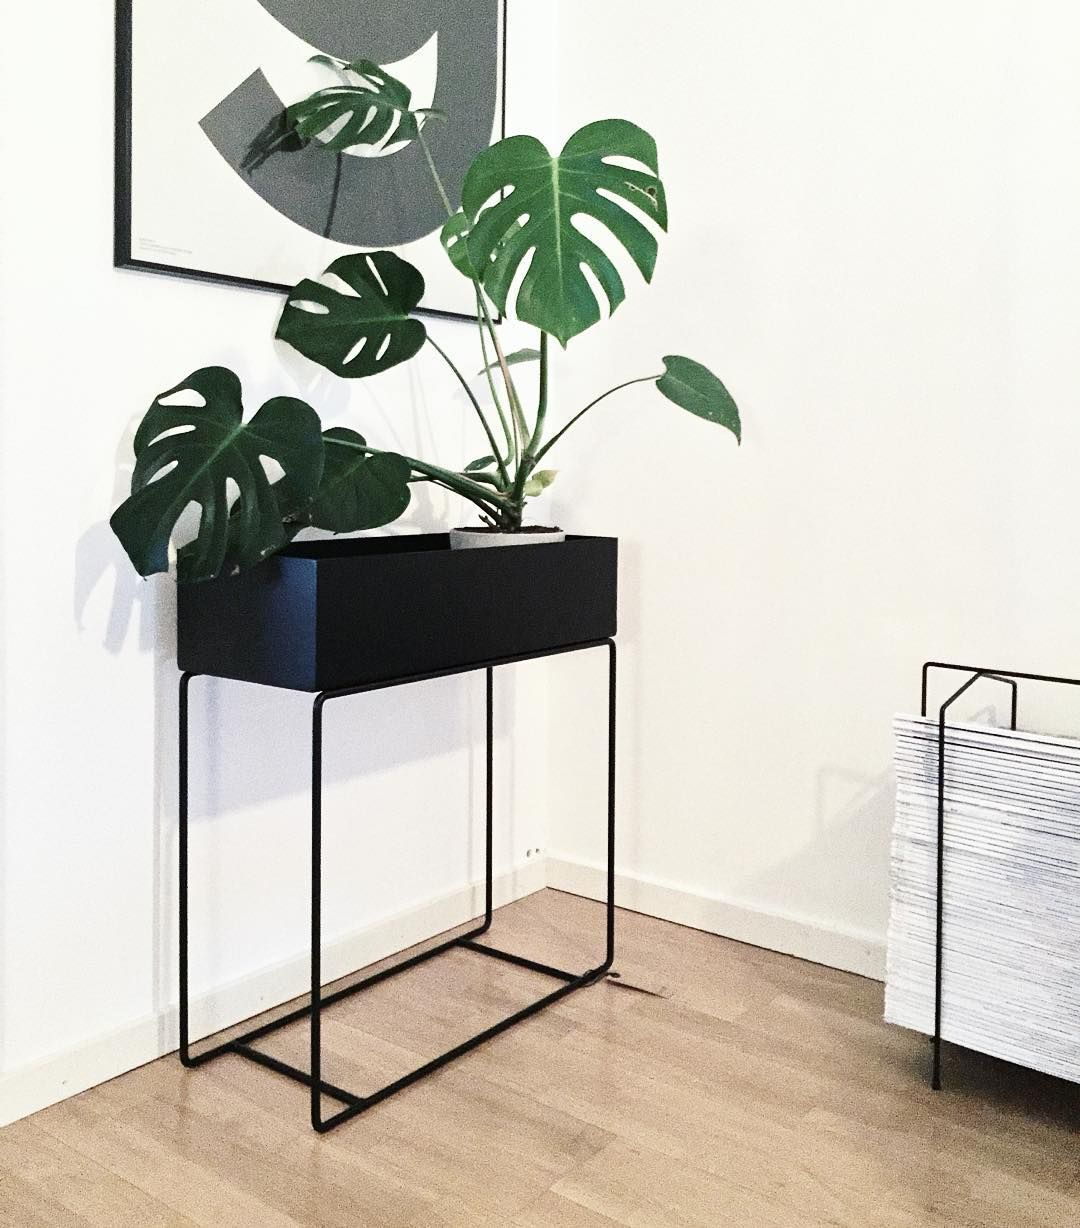 Pin by vincent order on 花器 | Pinterest | Plant box, Plants and Box